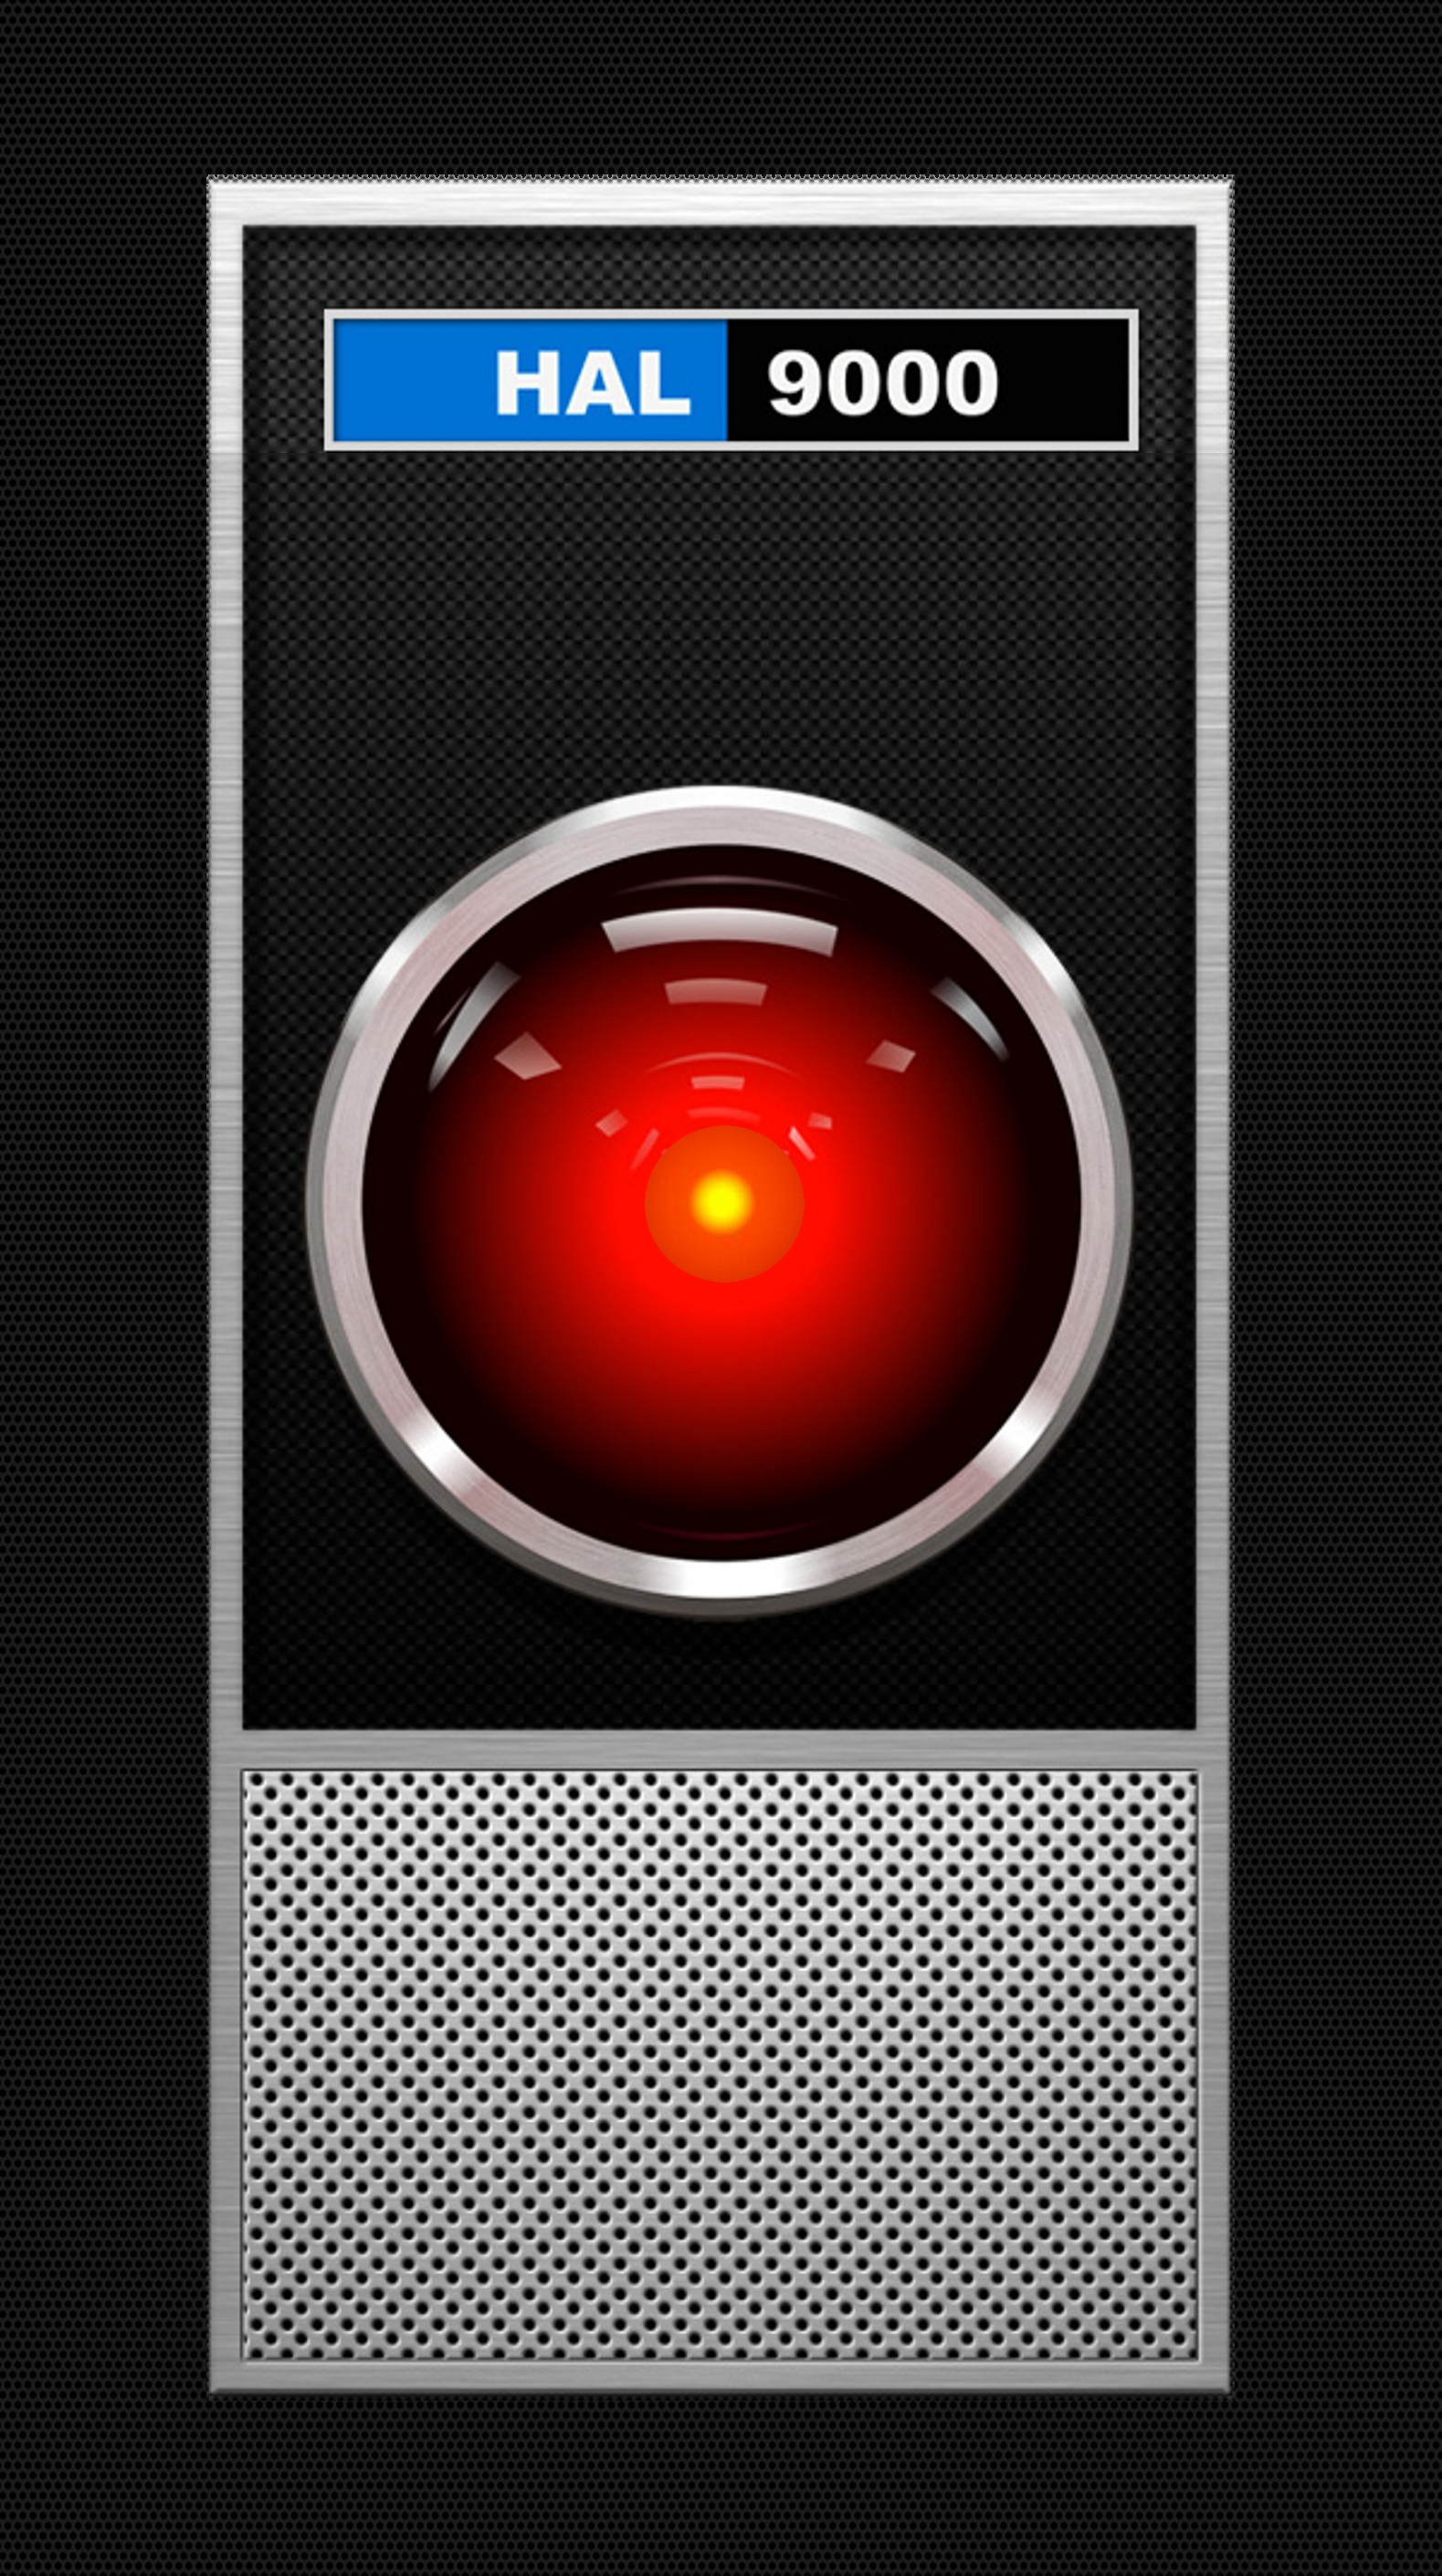 2001 Hal9000 Interface Active Lock Screen Wallpaper For Iphone X Parallax View Time Fits Perfectly Int Iphone Wallpaper Lock Screen Wallpaper Screen Wallpaper